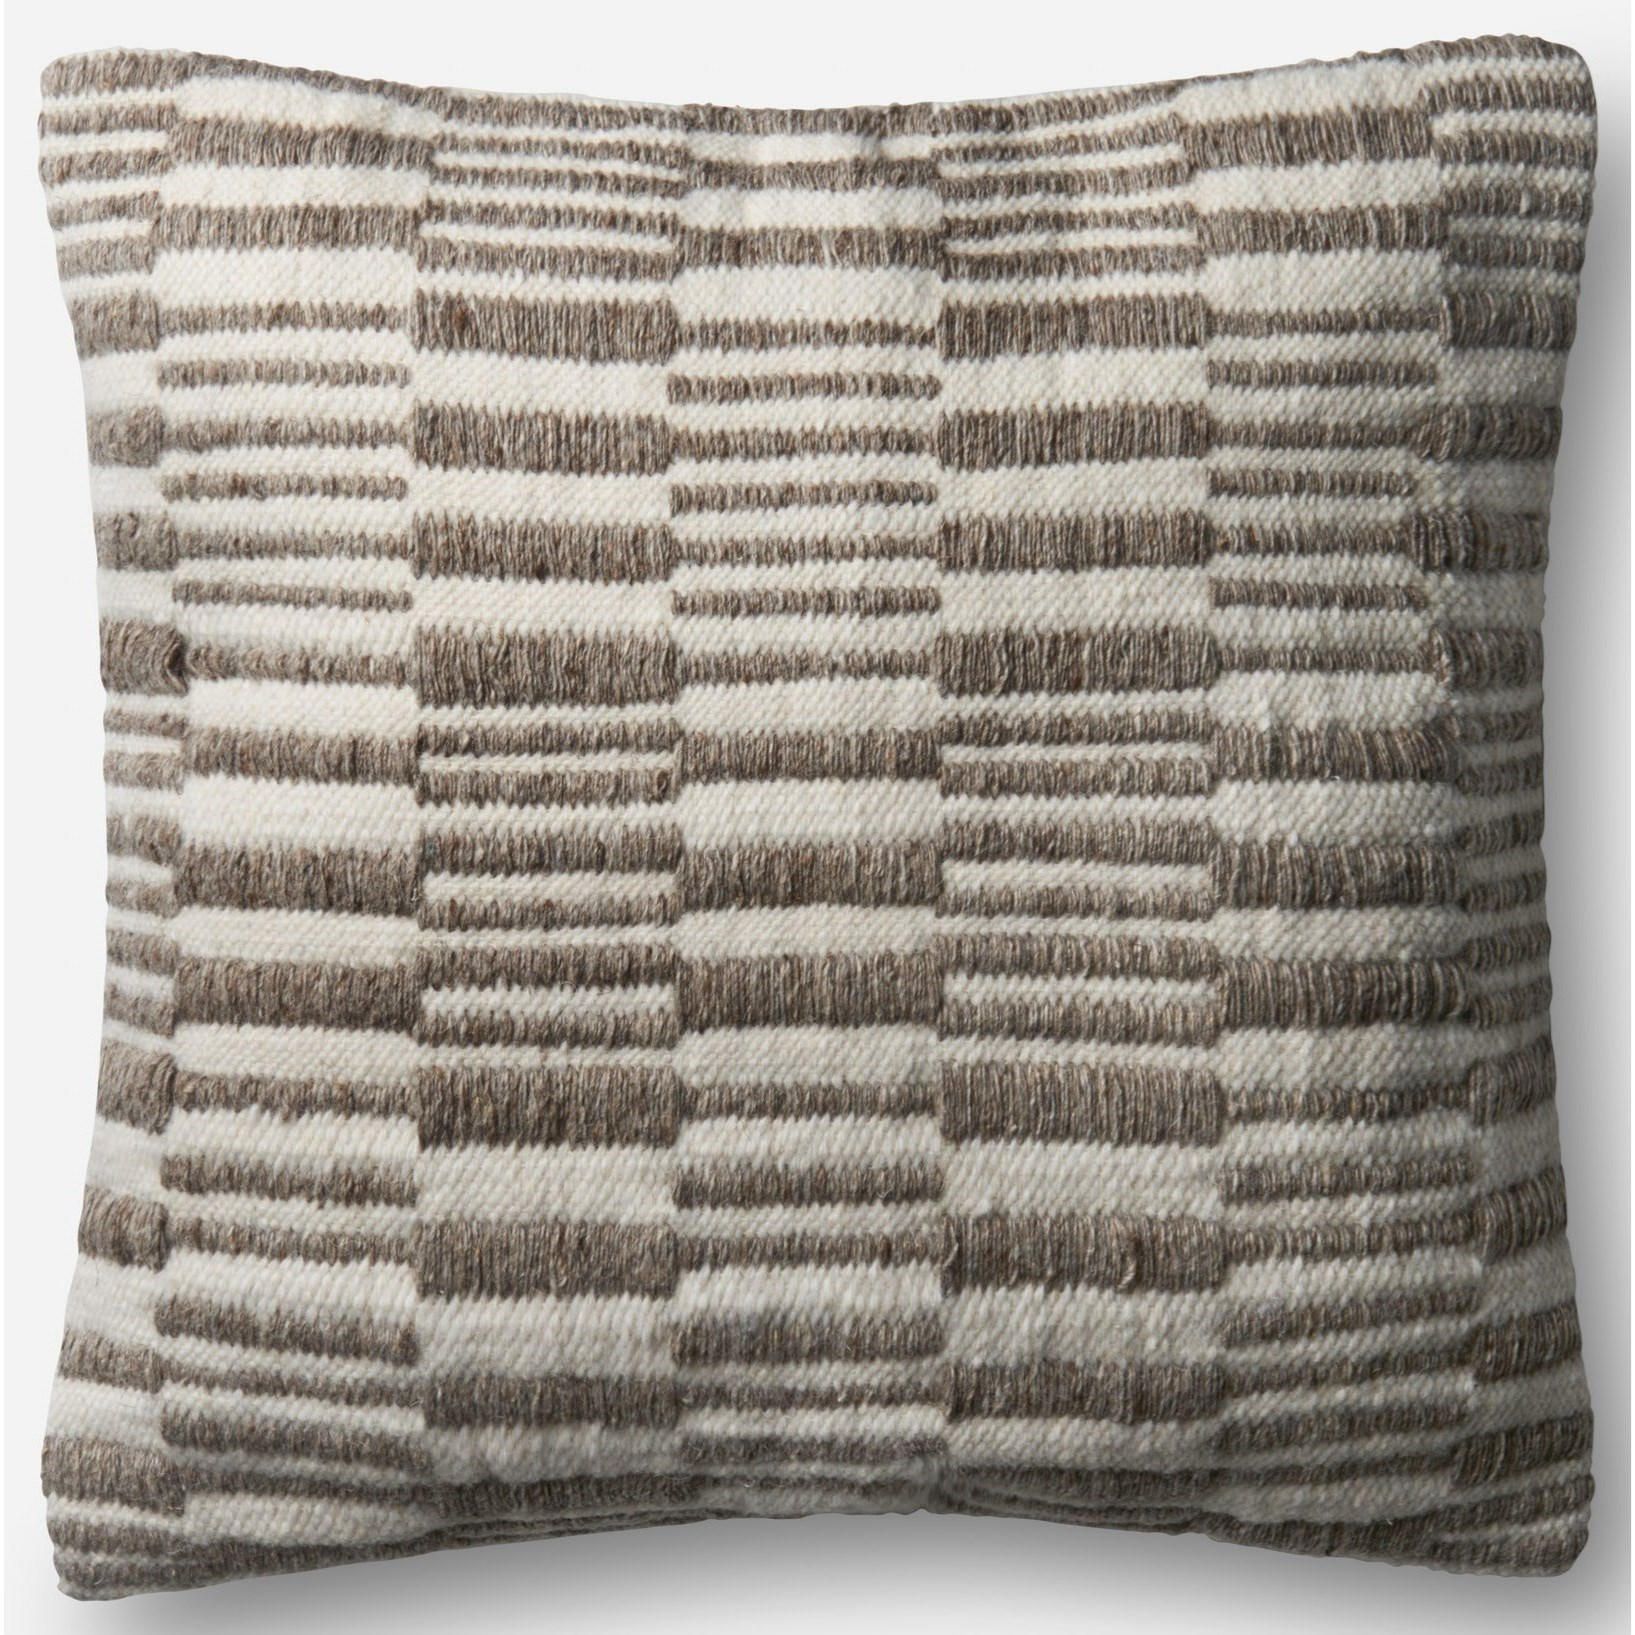 """Indoor/Outdoor Pillows 22"""" X 22"""" Pillow w/ Poly Fill by Loloi Rugs at Virginia Furniture Market"""